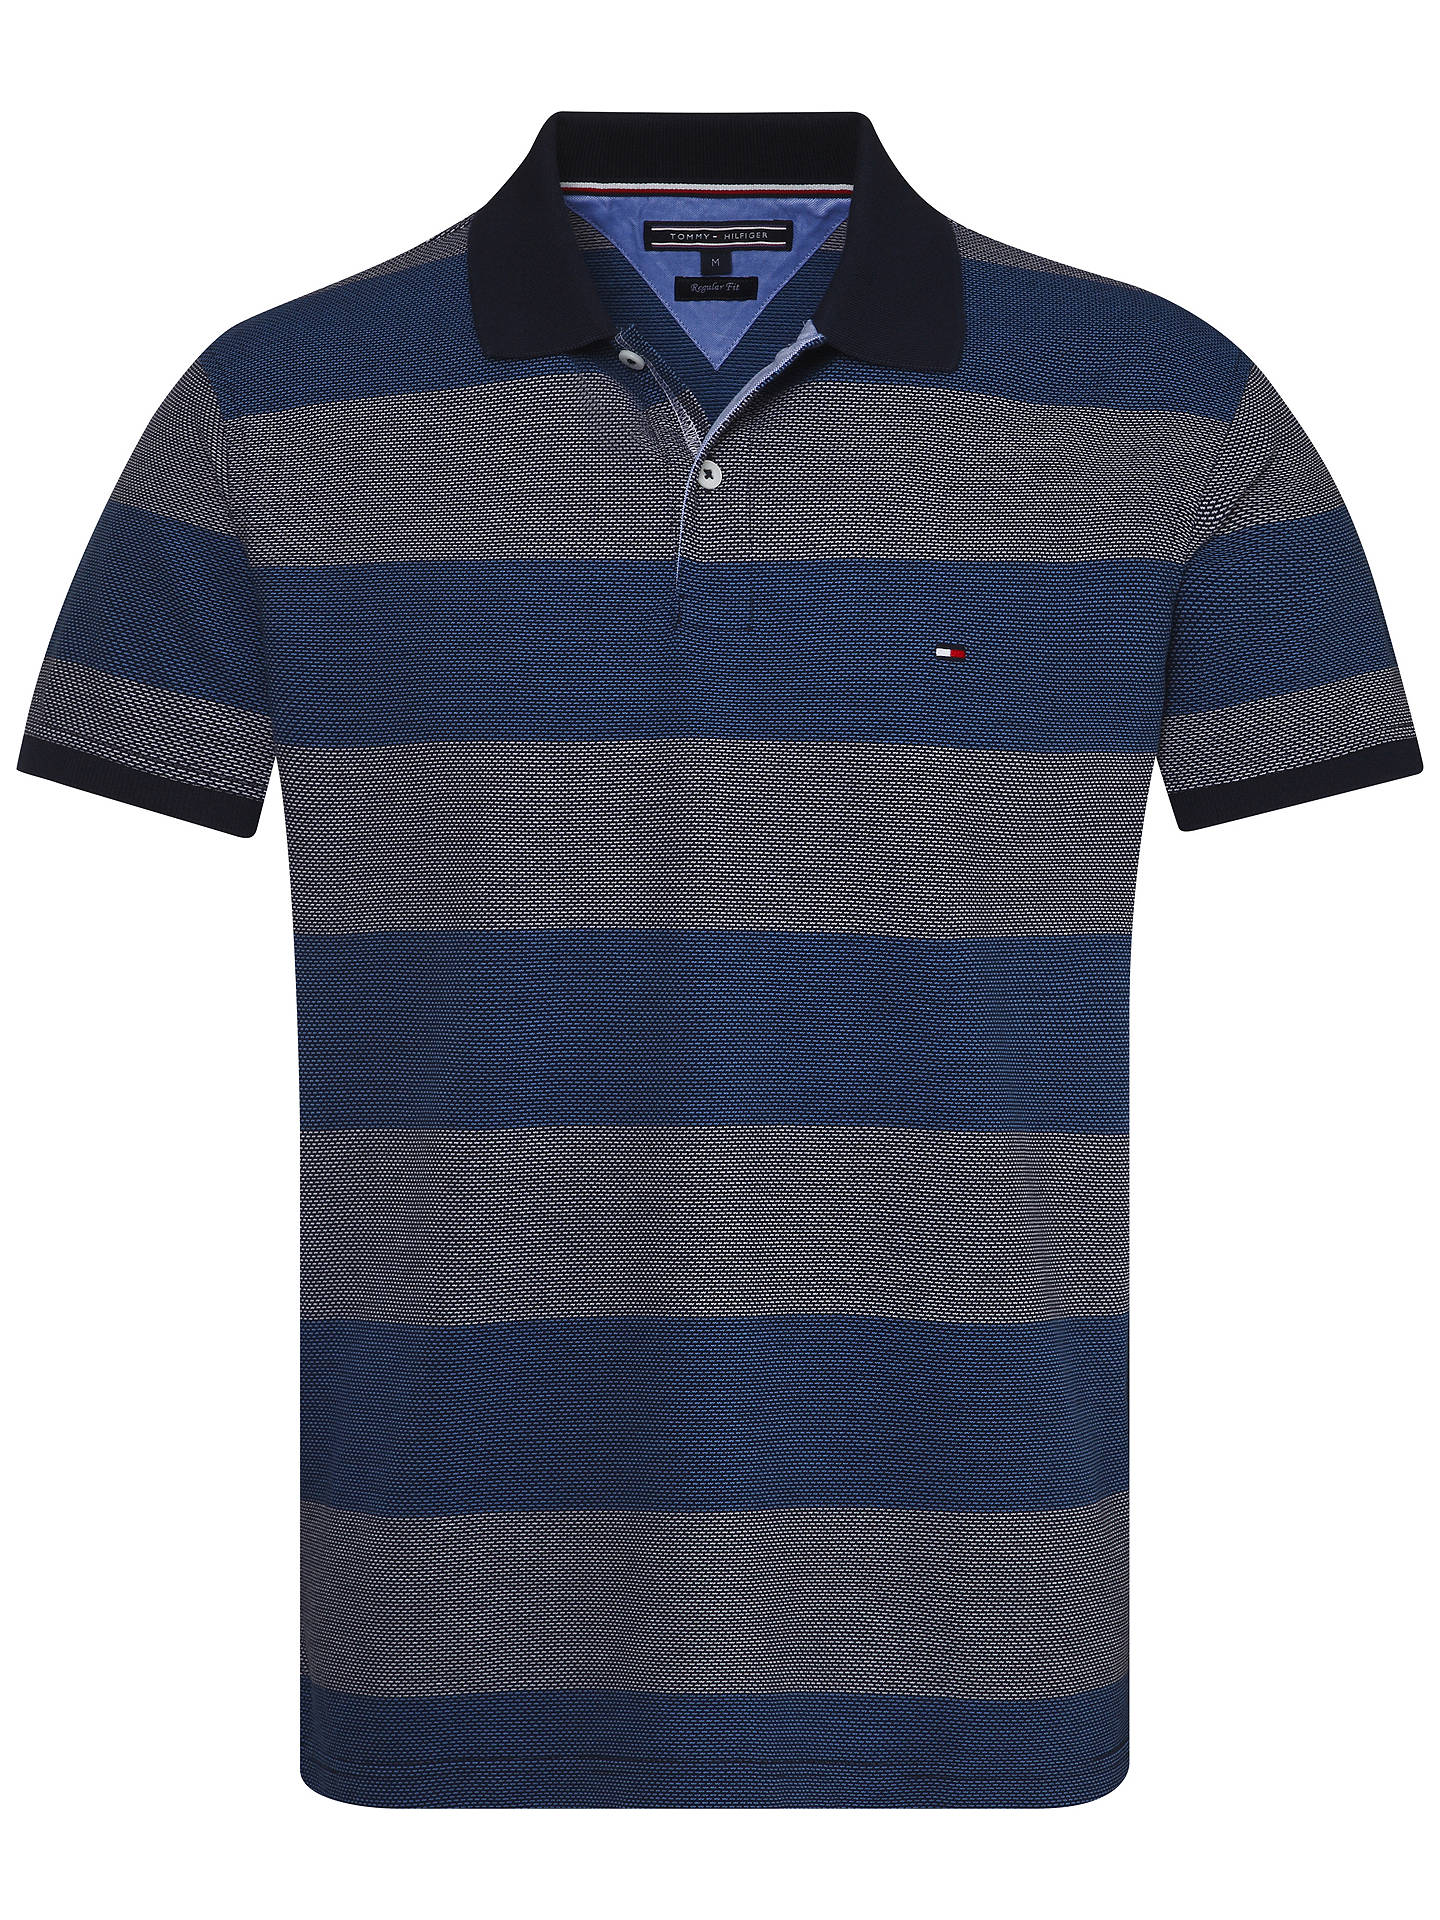 42d5500e Buy Tommy Hilfiger Jacquard Short Sleeve Polo Shirt, Navy Blazer, S Online  at johnlewis ...